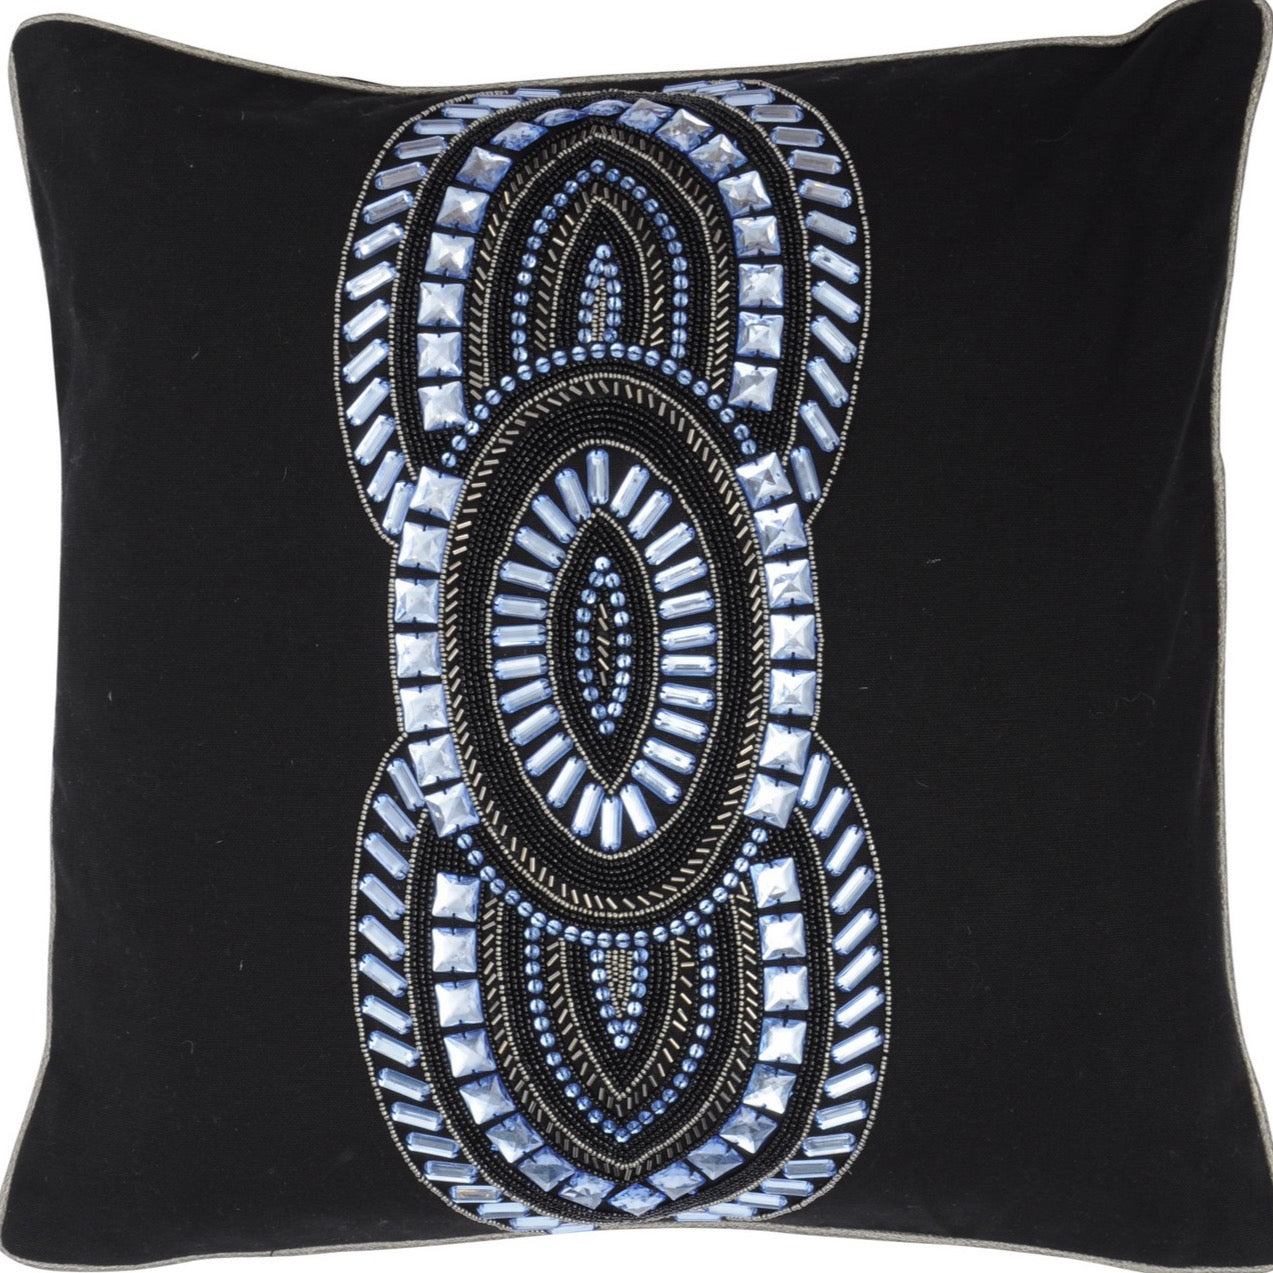 Halcyon Black & Blue Square Cushion